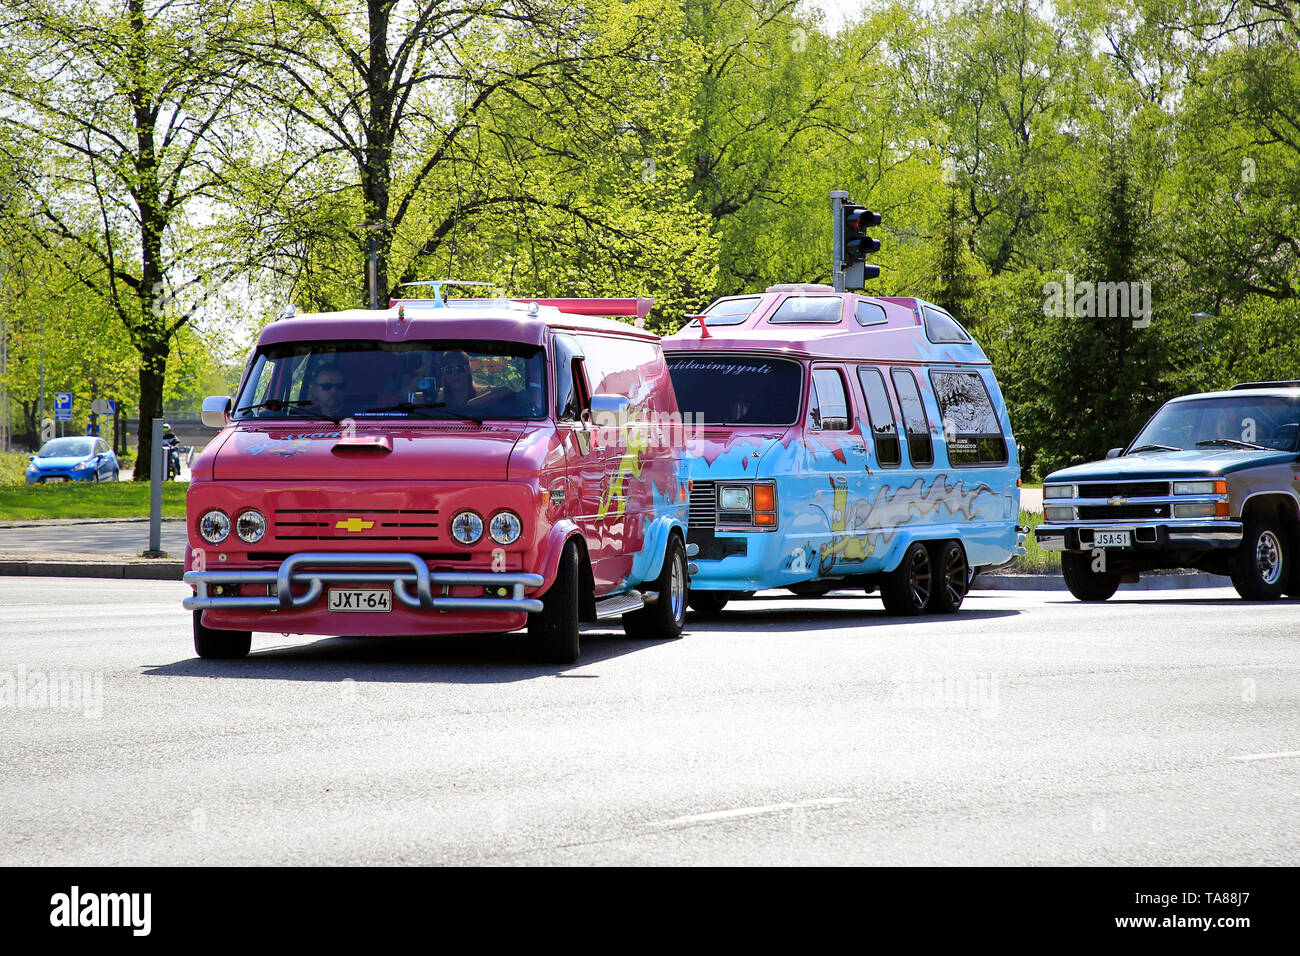 Salo, Finland. May 18, 2019. Colorful Chevy van Bartvan with customised van converted into a caravan arrives to Salon Maisema Cruising 2019. - Stock Image